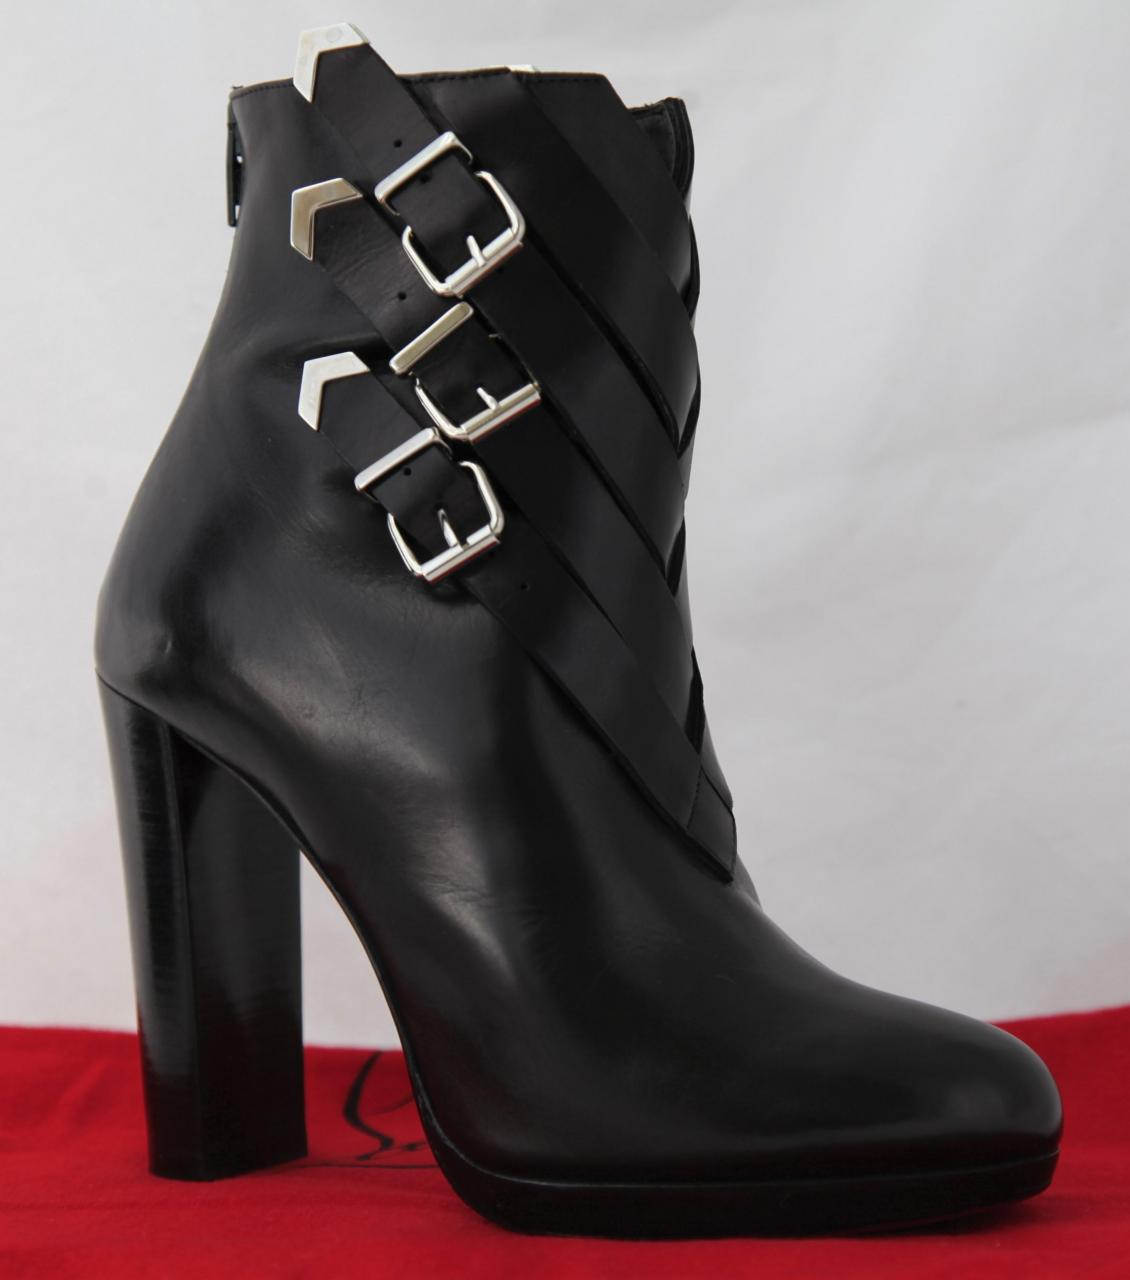 brand new d156c de9cc christian-louboutin-black-troop-silver-buckles-high-heel-red ...